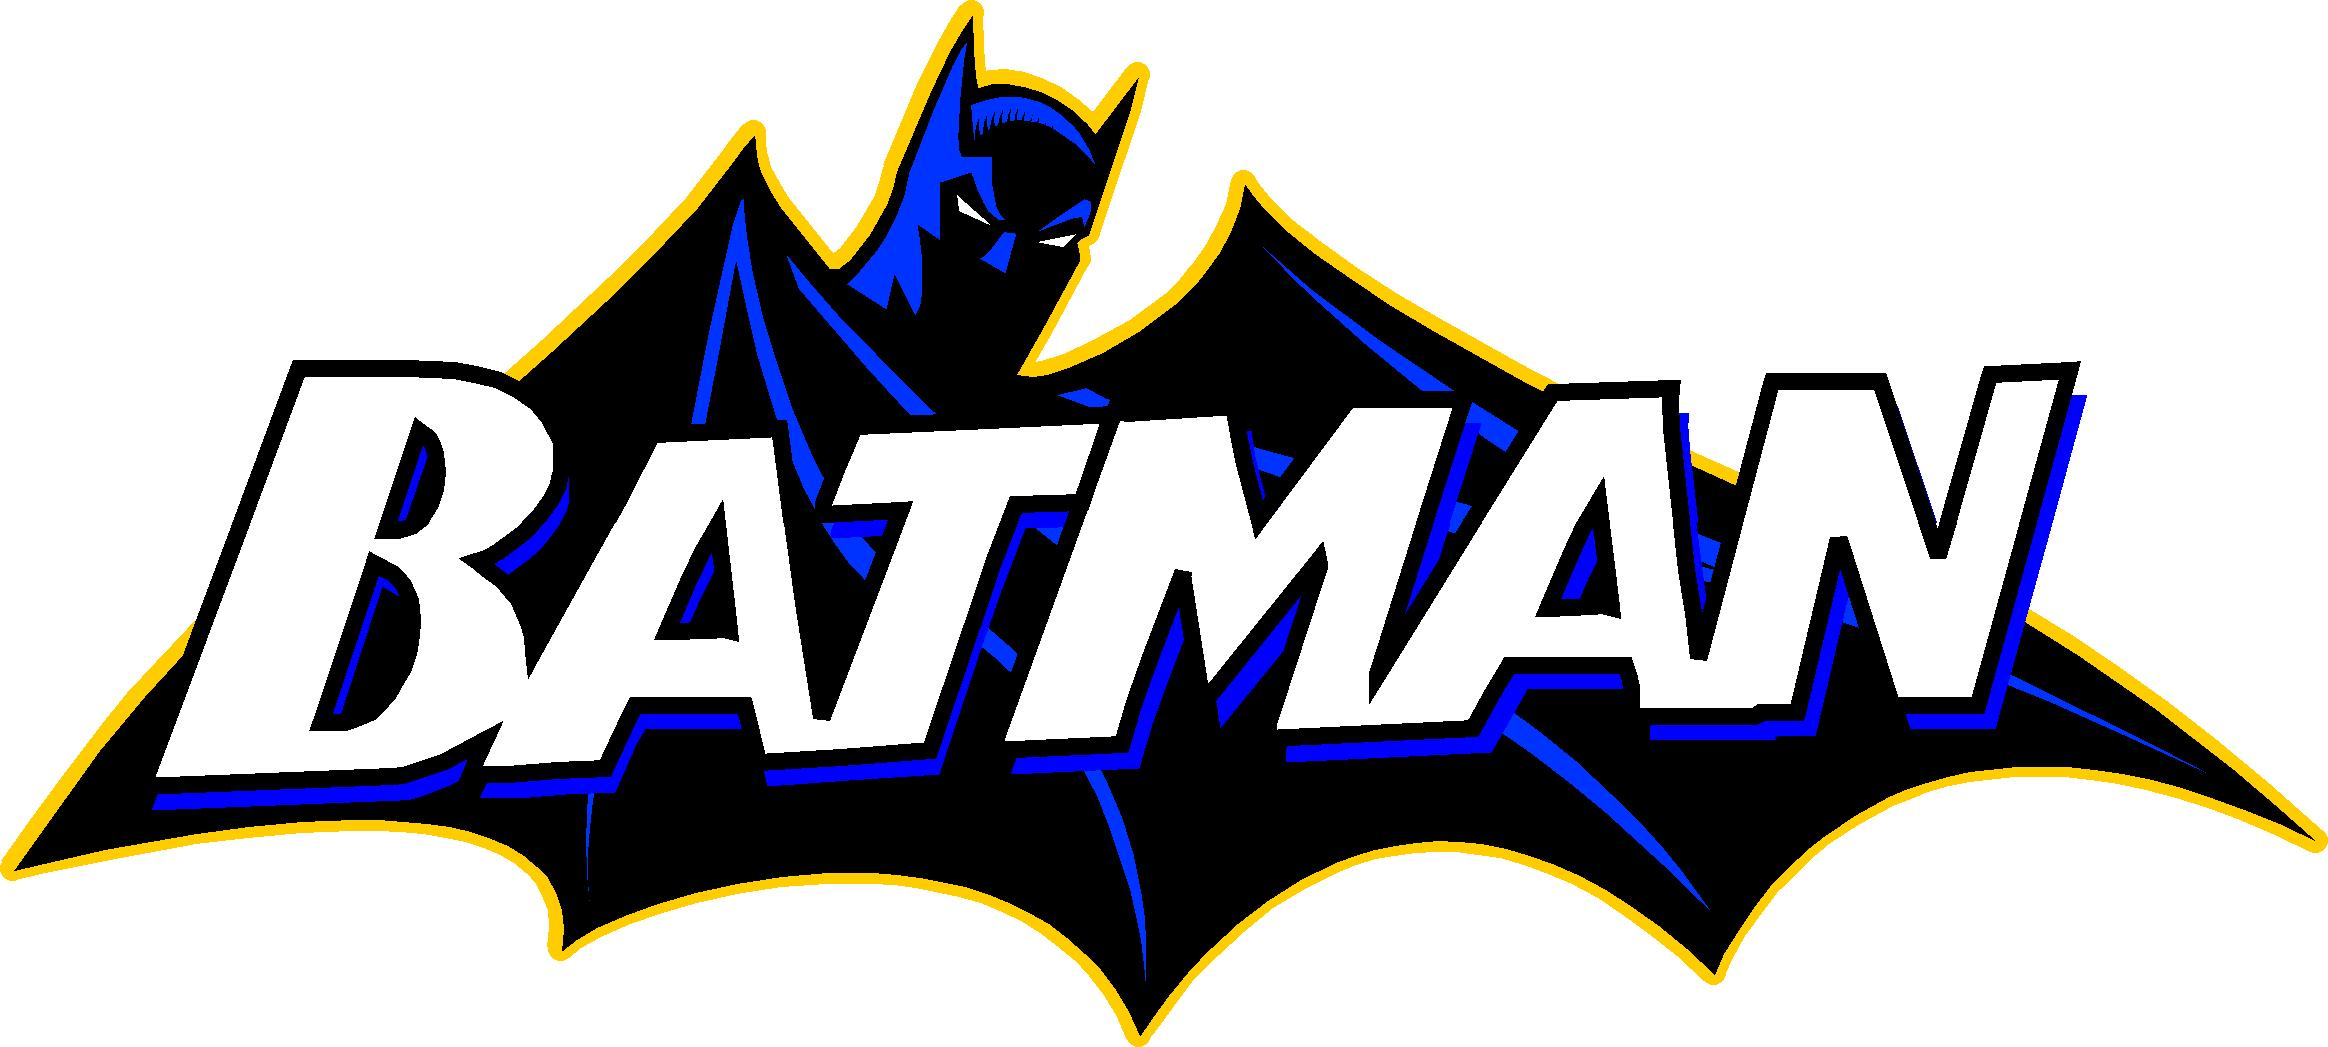 Batman title logo : The Asylum - The Outhouse - The Greatest Comic ...